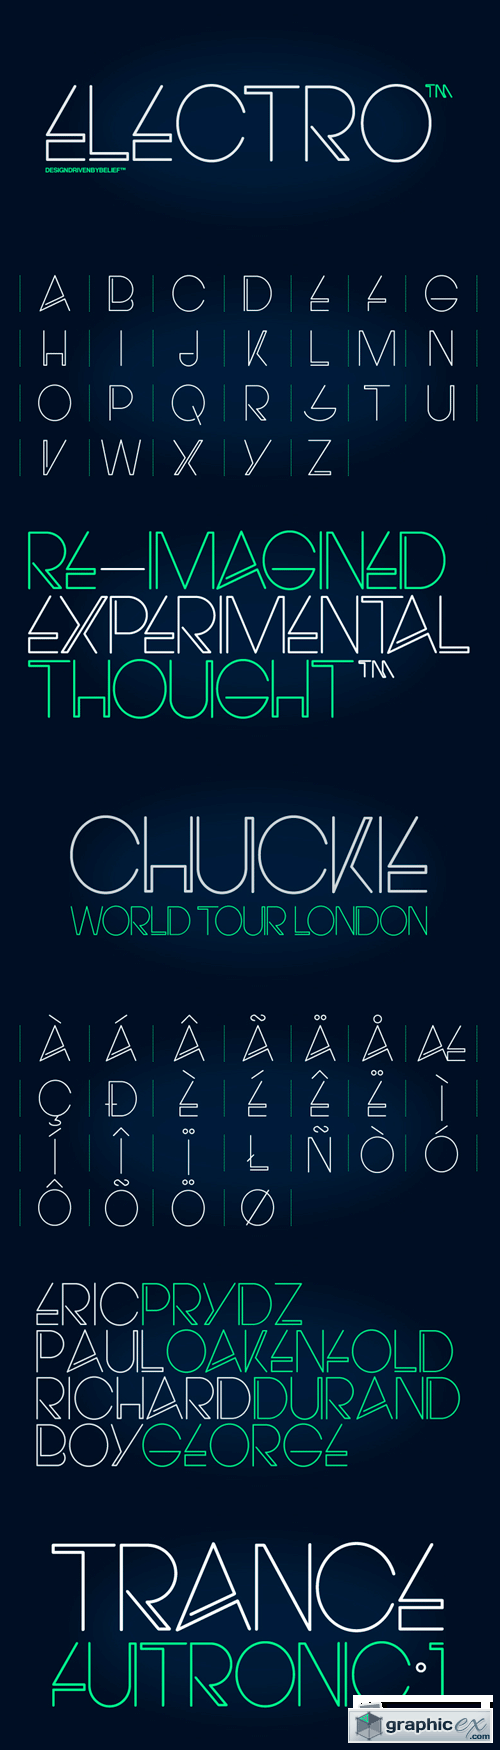 Electro Font for $25